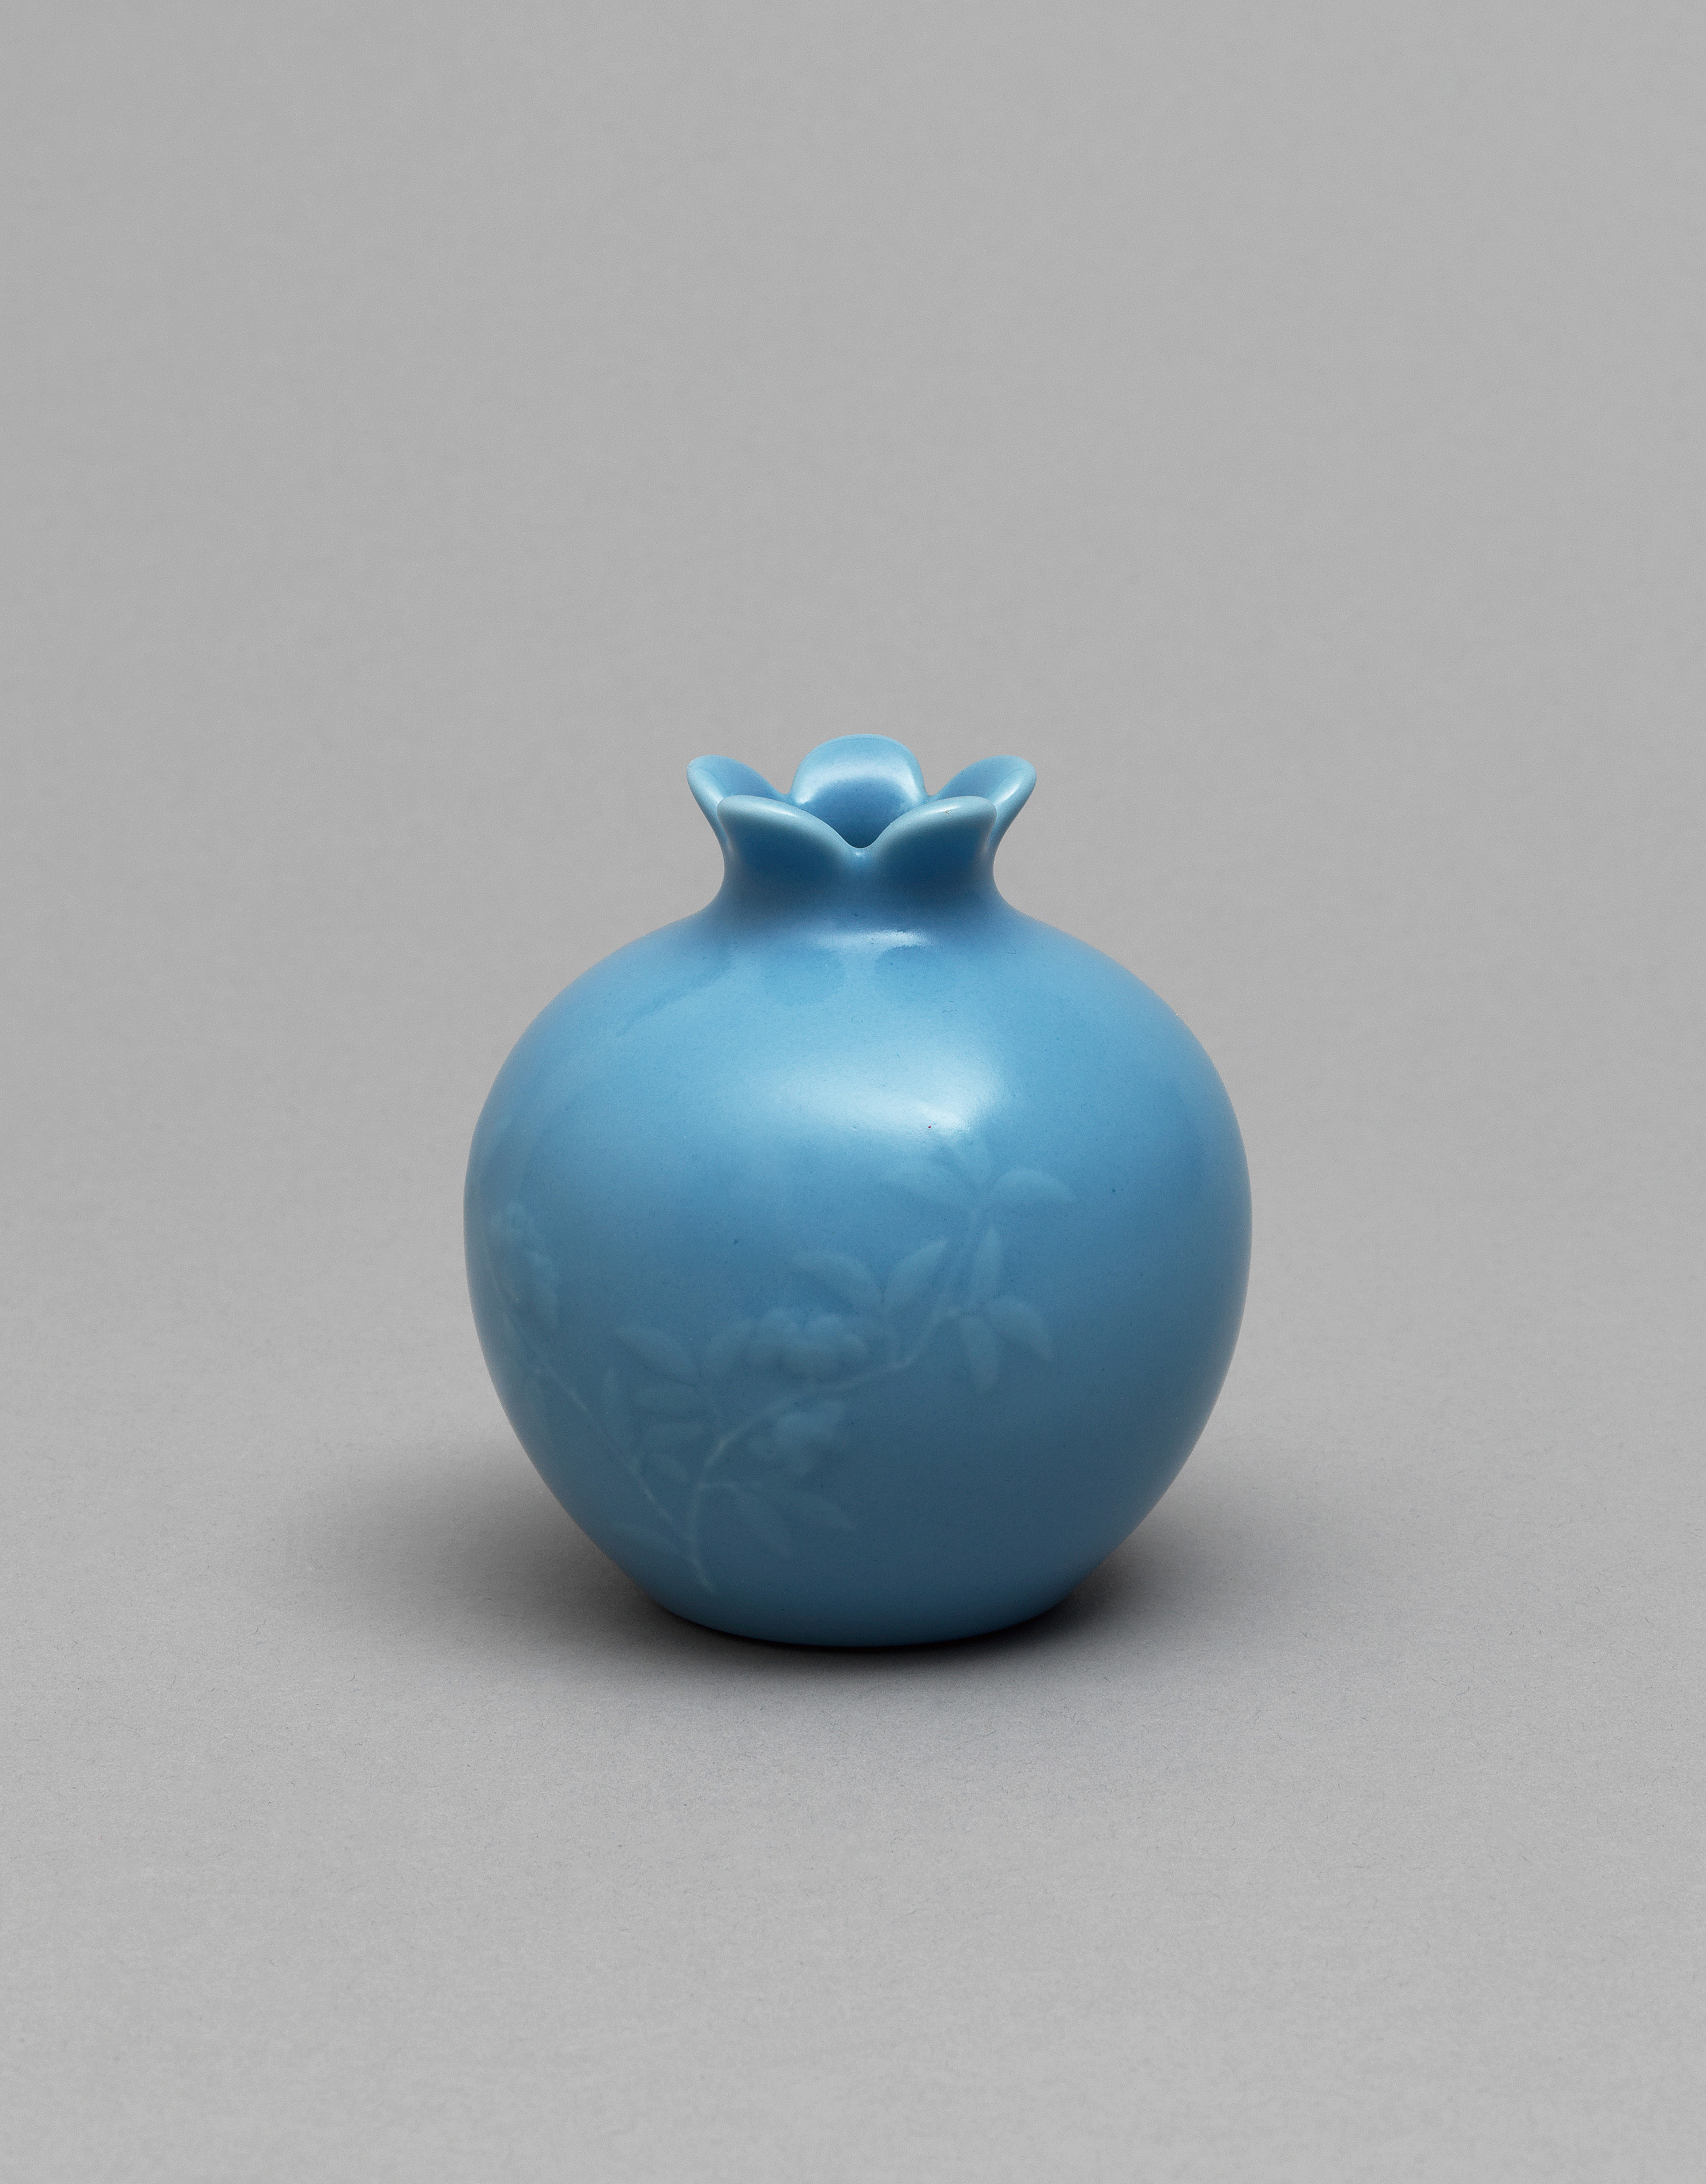 Lot 1 - A small pale-blue-glazed pomegranate vase, Qing Dynasty, Haoran Tang hallmark, Daoguang Period